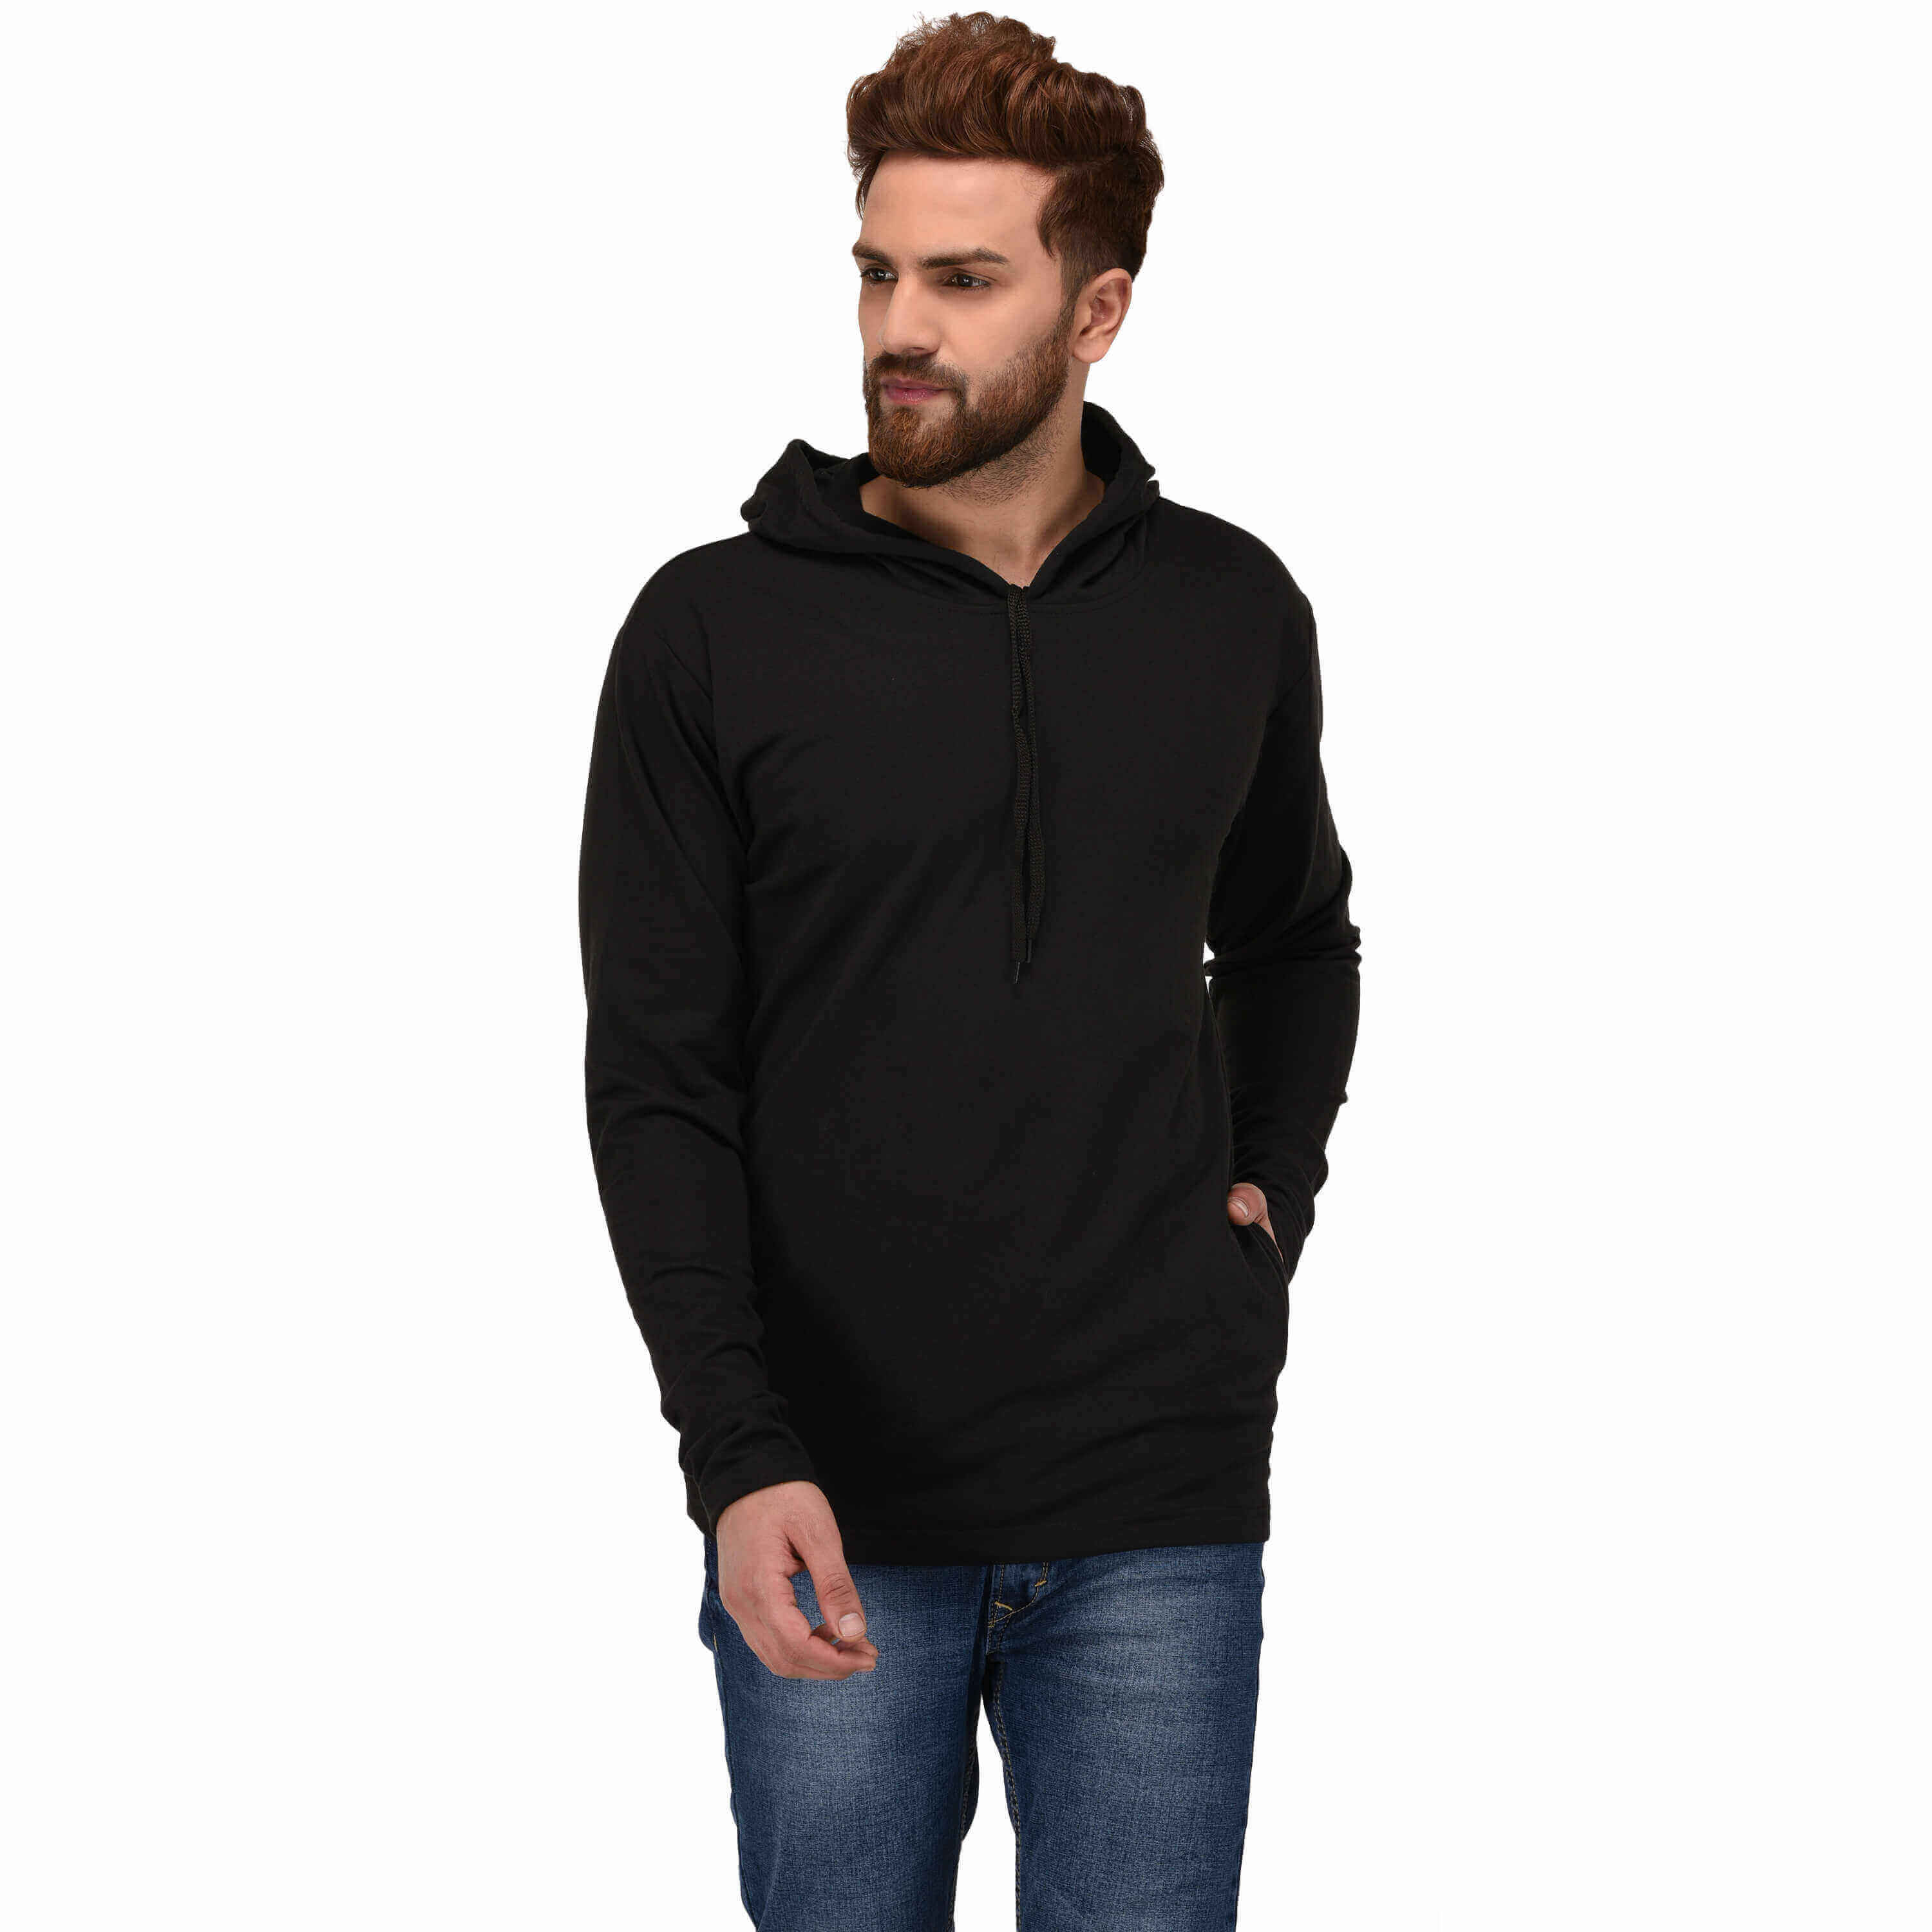 Sports Hoodies Manufacturers in Bolivia